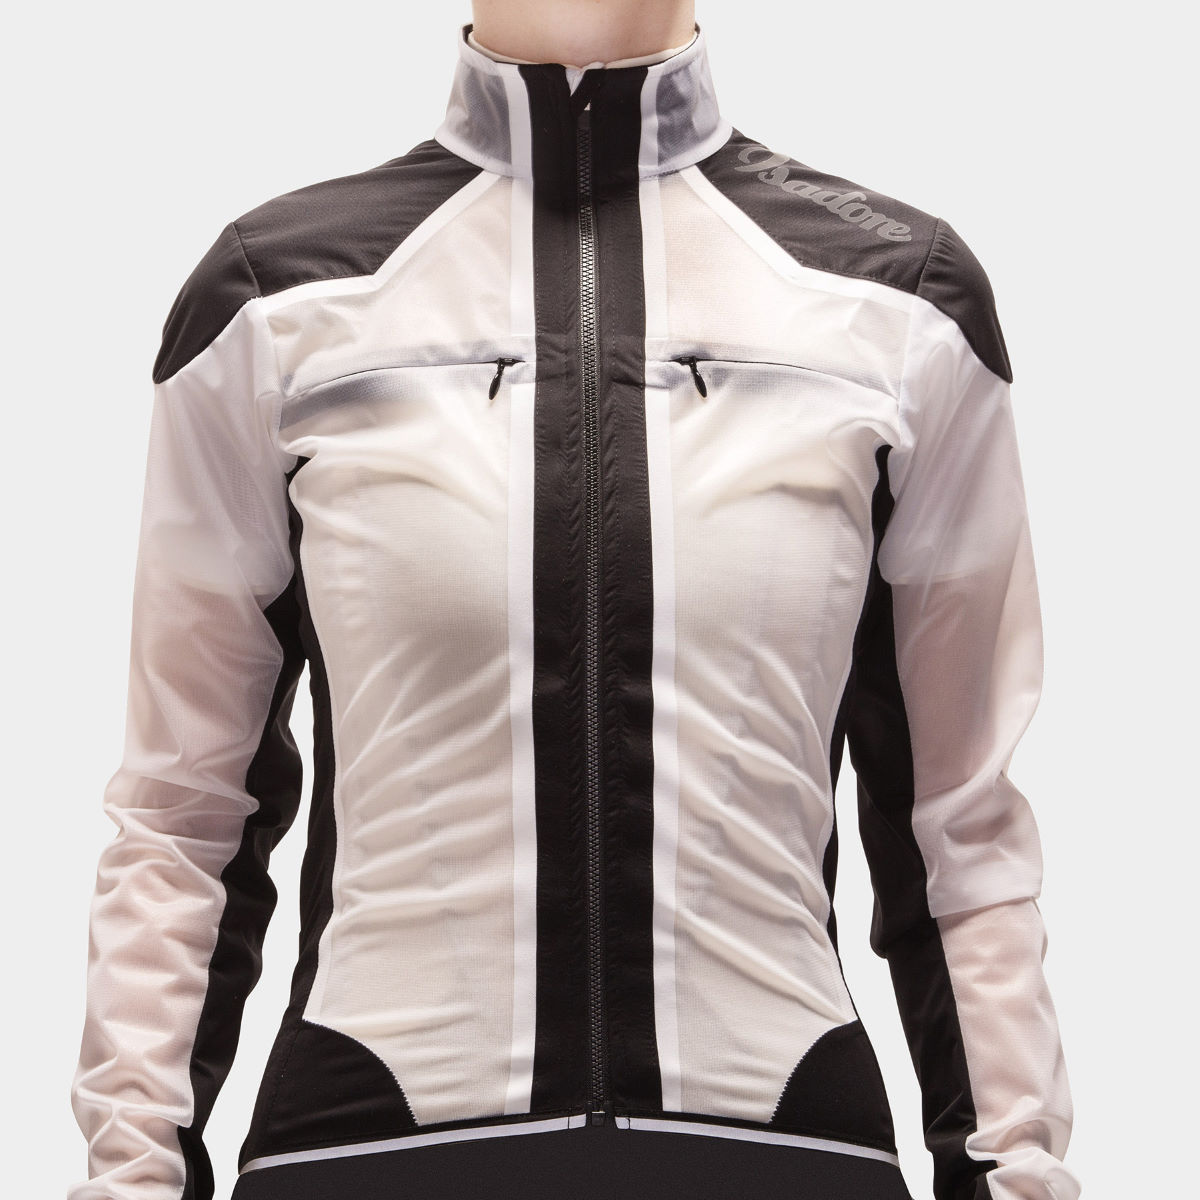 Veste Femme Isadore The Essential - M Noir Coupe-vents vélo